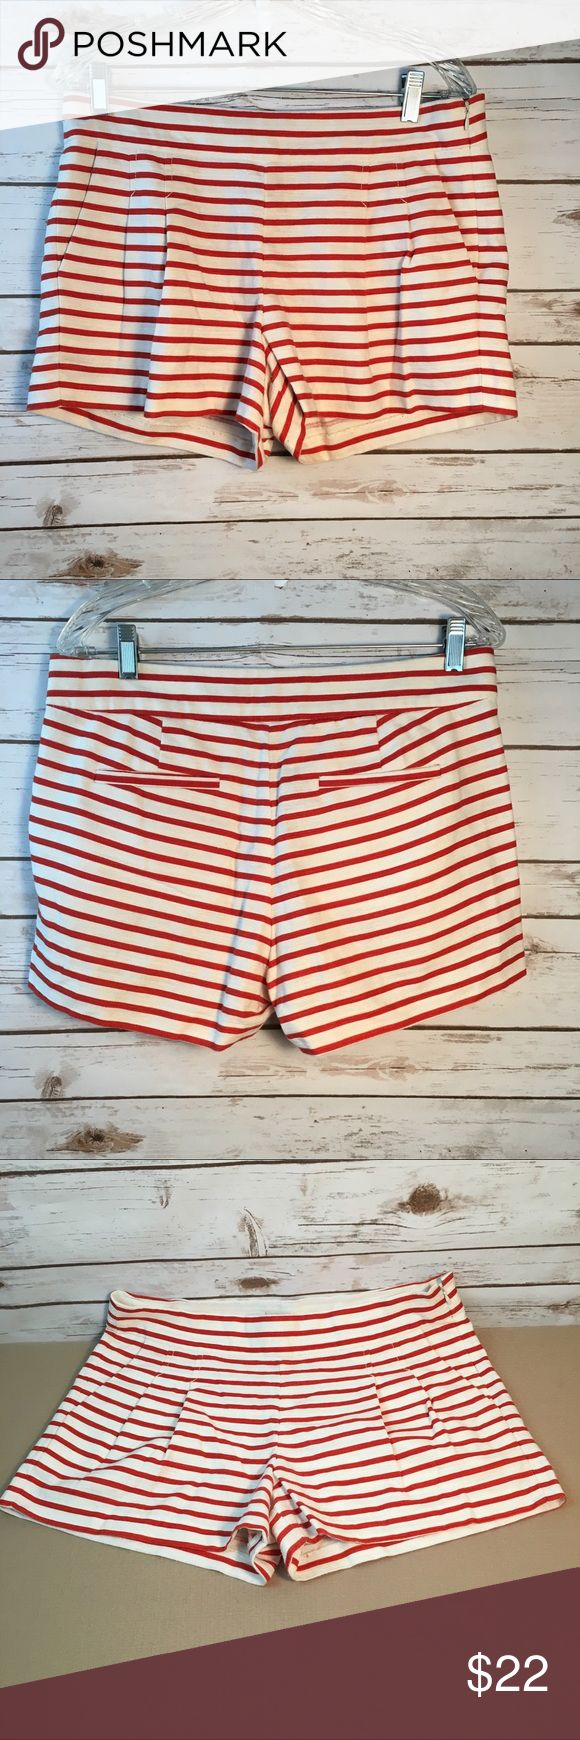 """J. Crew Red Striped Pleated Nautical Shorts J. Crew Red Striped Pleated Nautical Shorts.  Linen Cotton Blend. Size 8. Style #82107.  Pre owned - gently worn.  Length 13"""" waist measured across 16 1/4"""". Zips up side. J. Crew Shorts"""